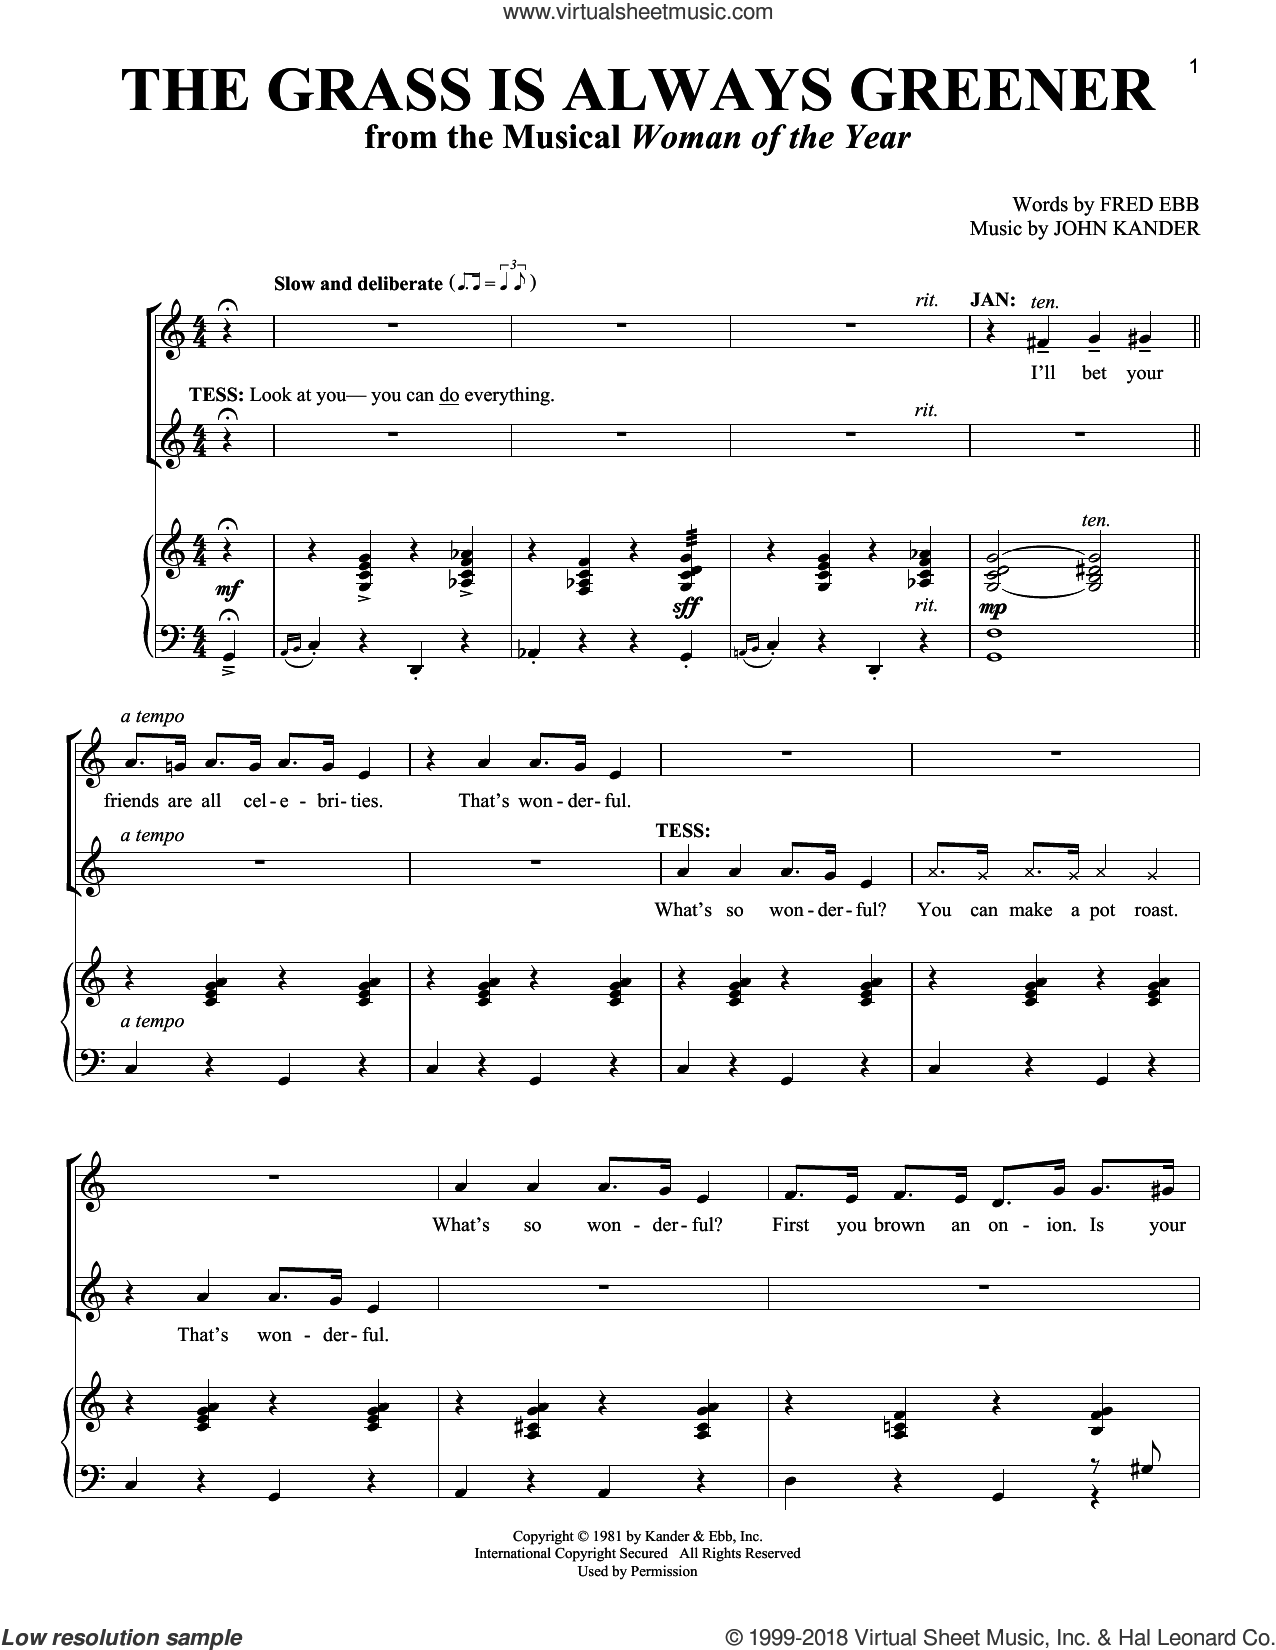 The Grass Is Always Greener sheet music for two voices and piano by John Kander and Fred Ebb, intermediate skill level